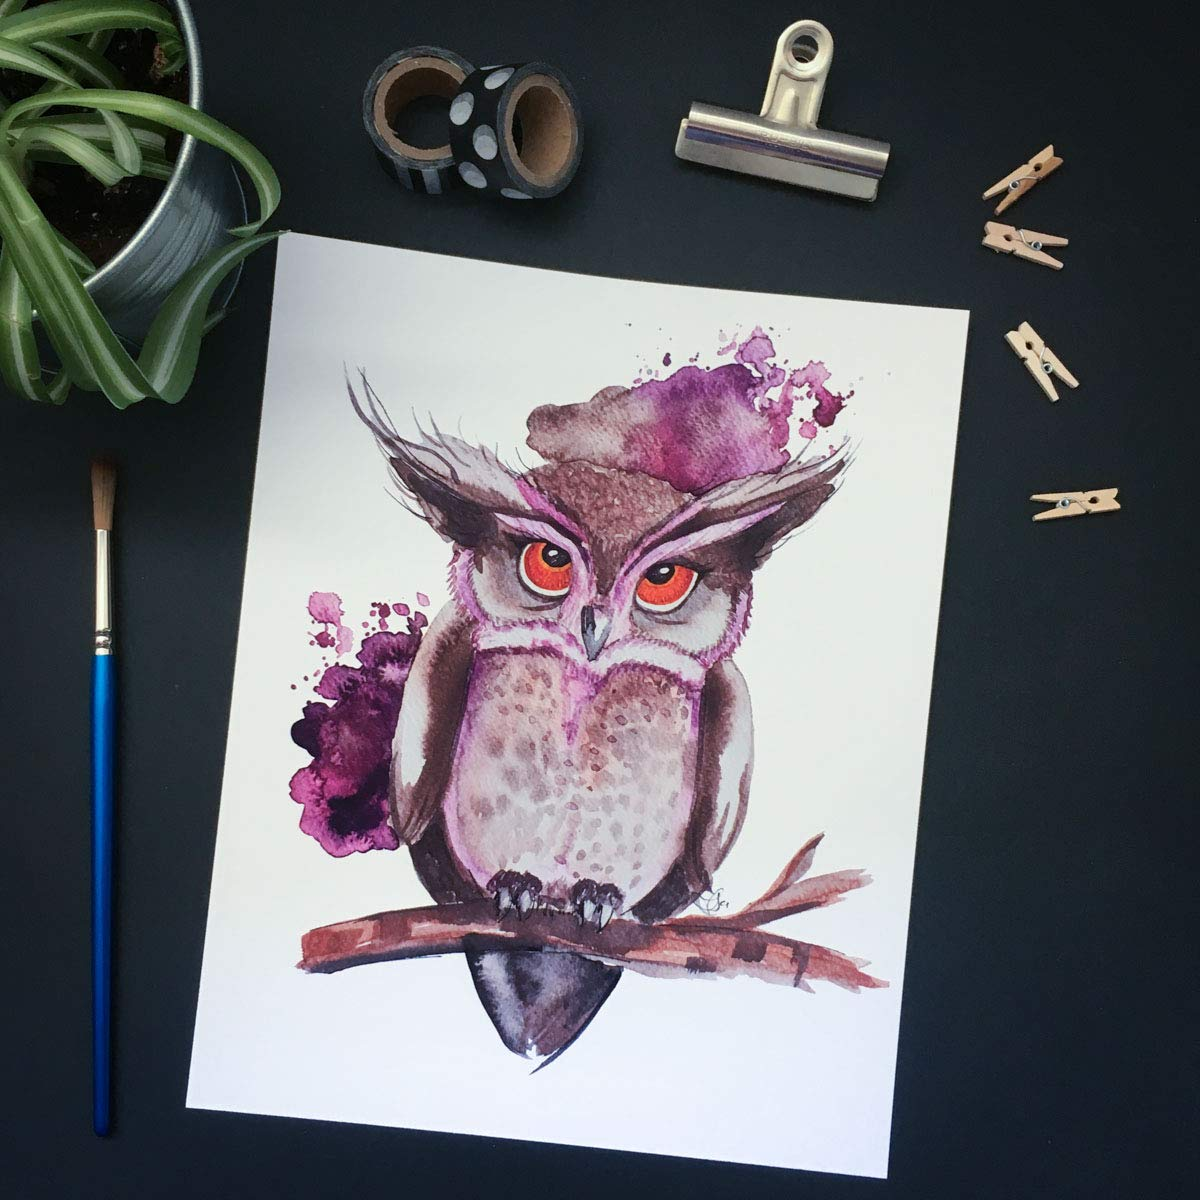 Owl Bird of Prey Drawing Painting Watercolour Home Decor Art Poster Print